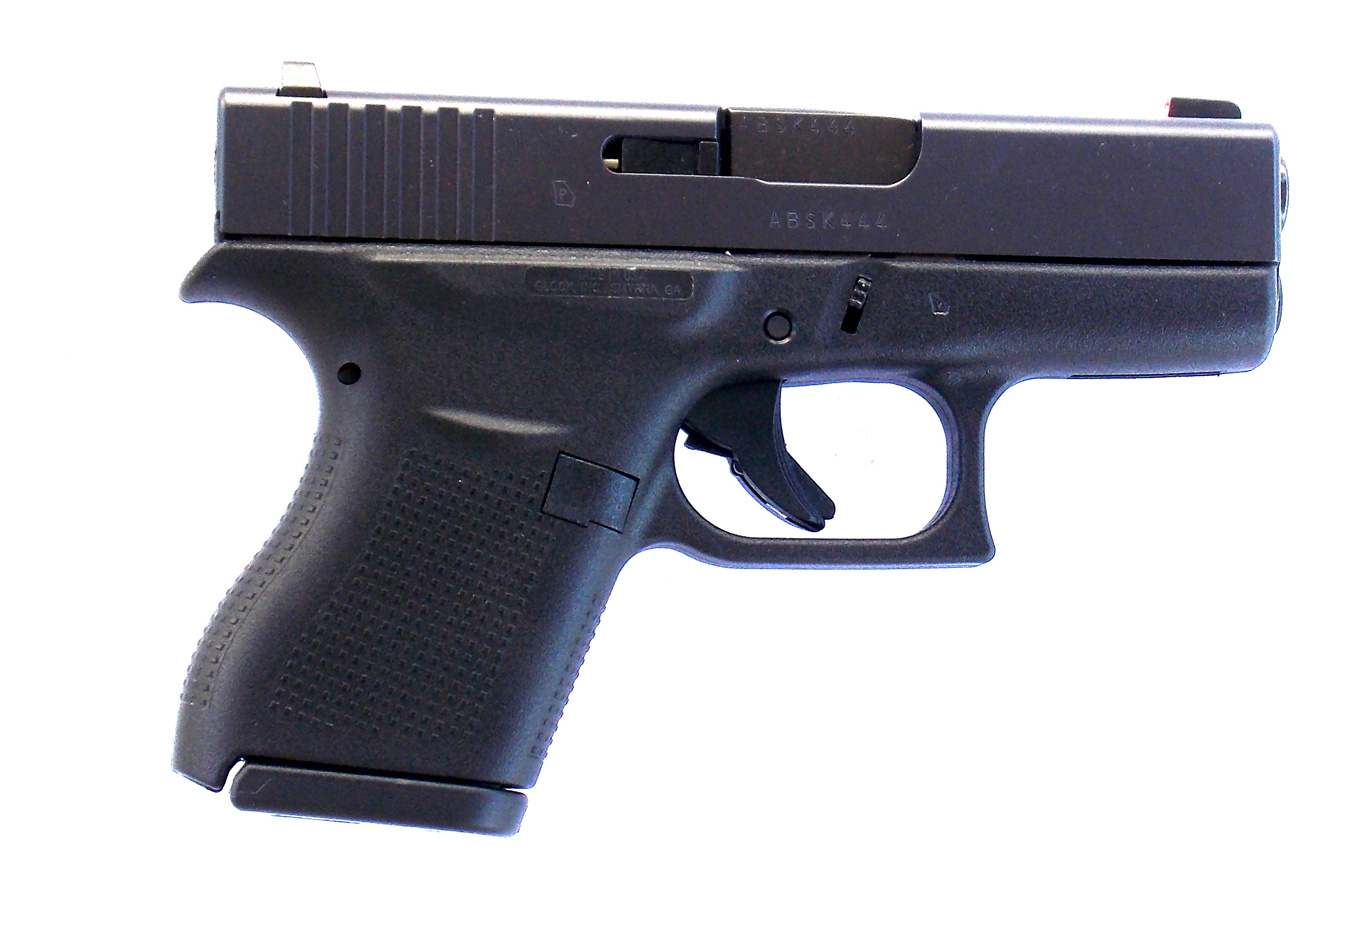 Glock 43 9mm handgun right profile